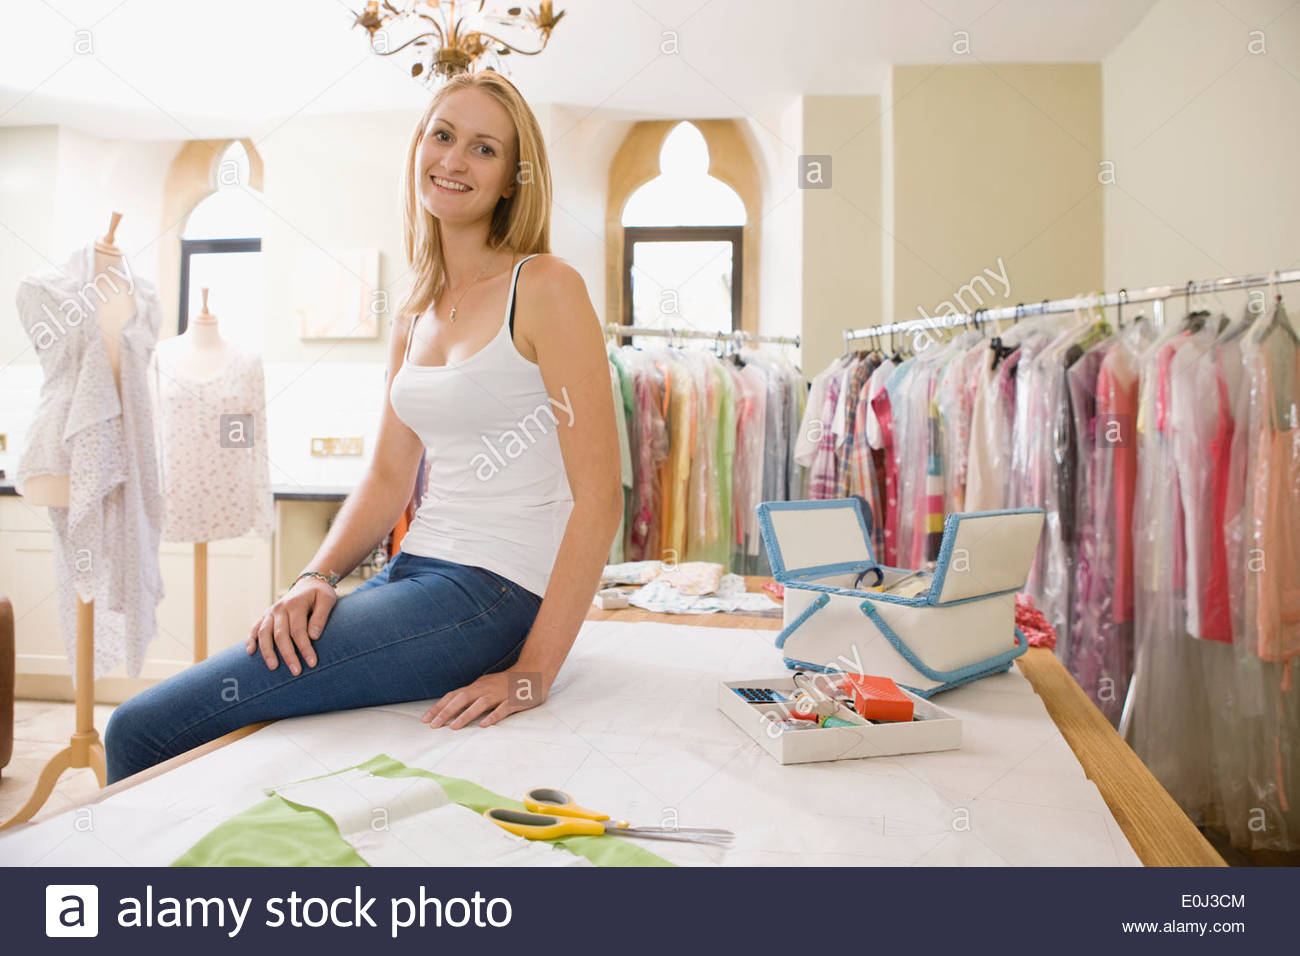 Portrait Of Fashion Designer In Design Studio - Stock Image